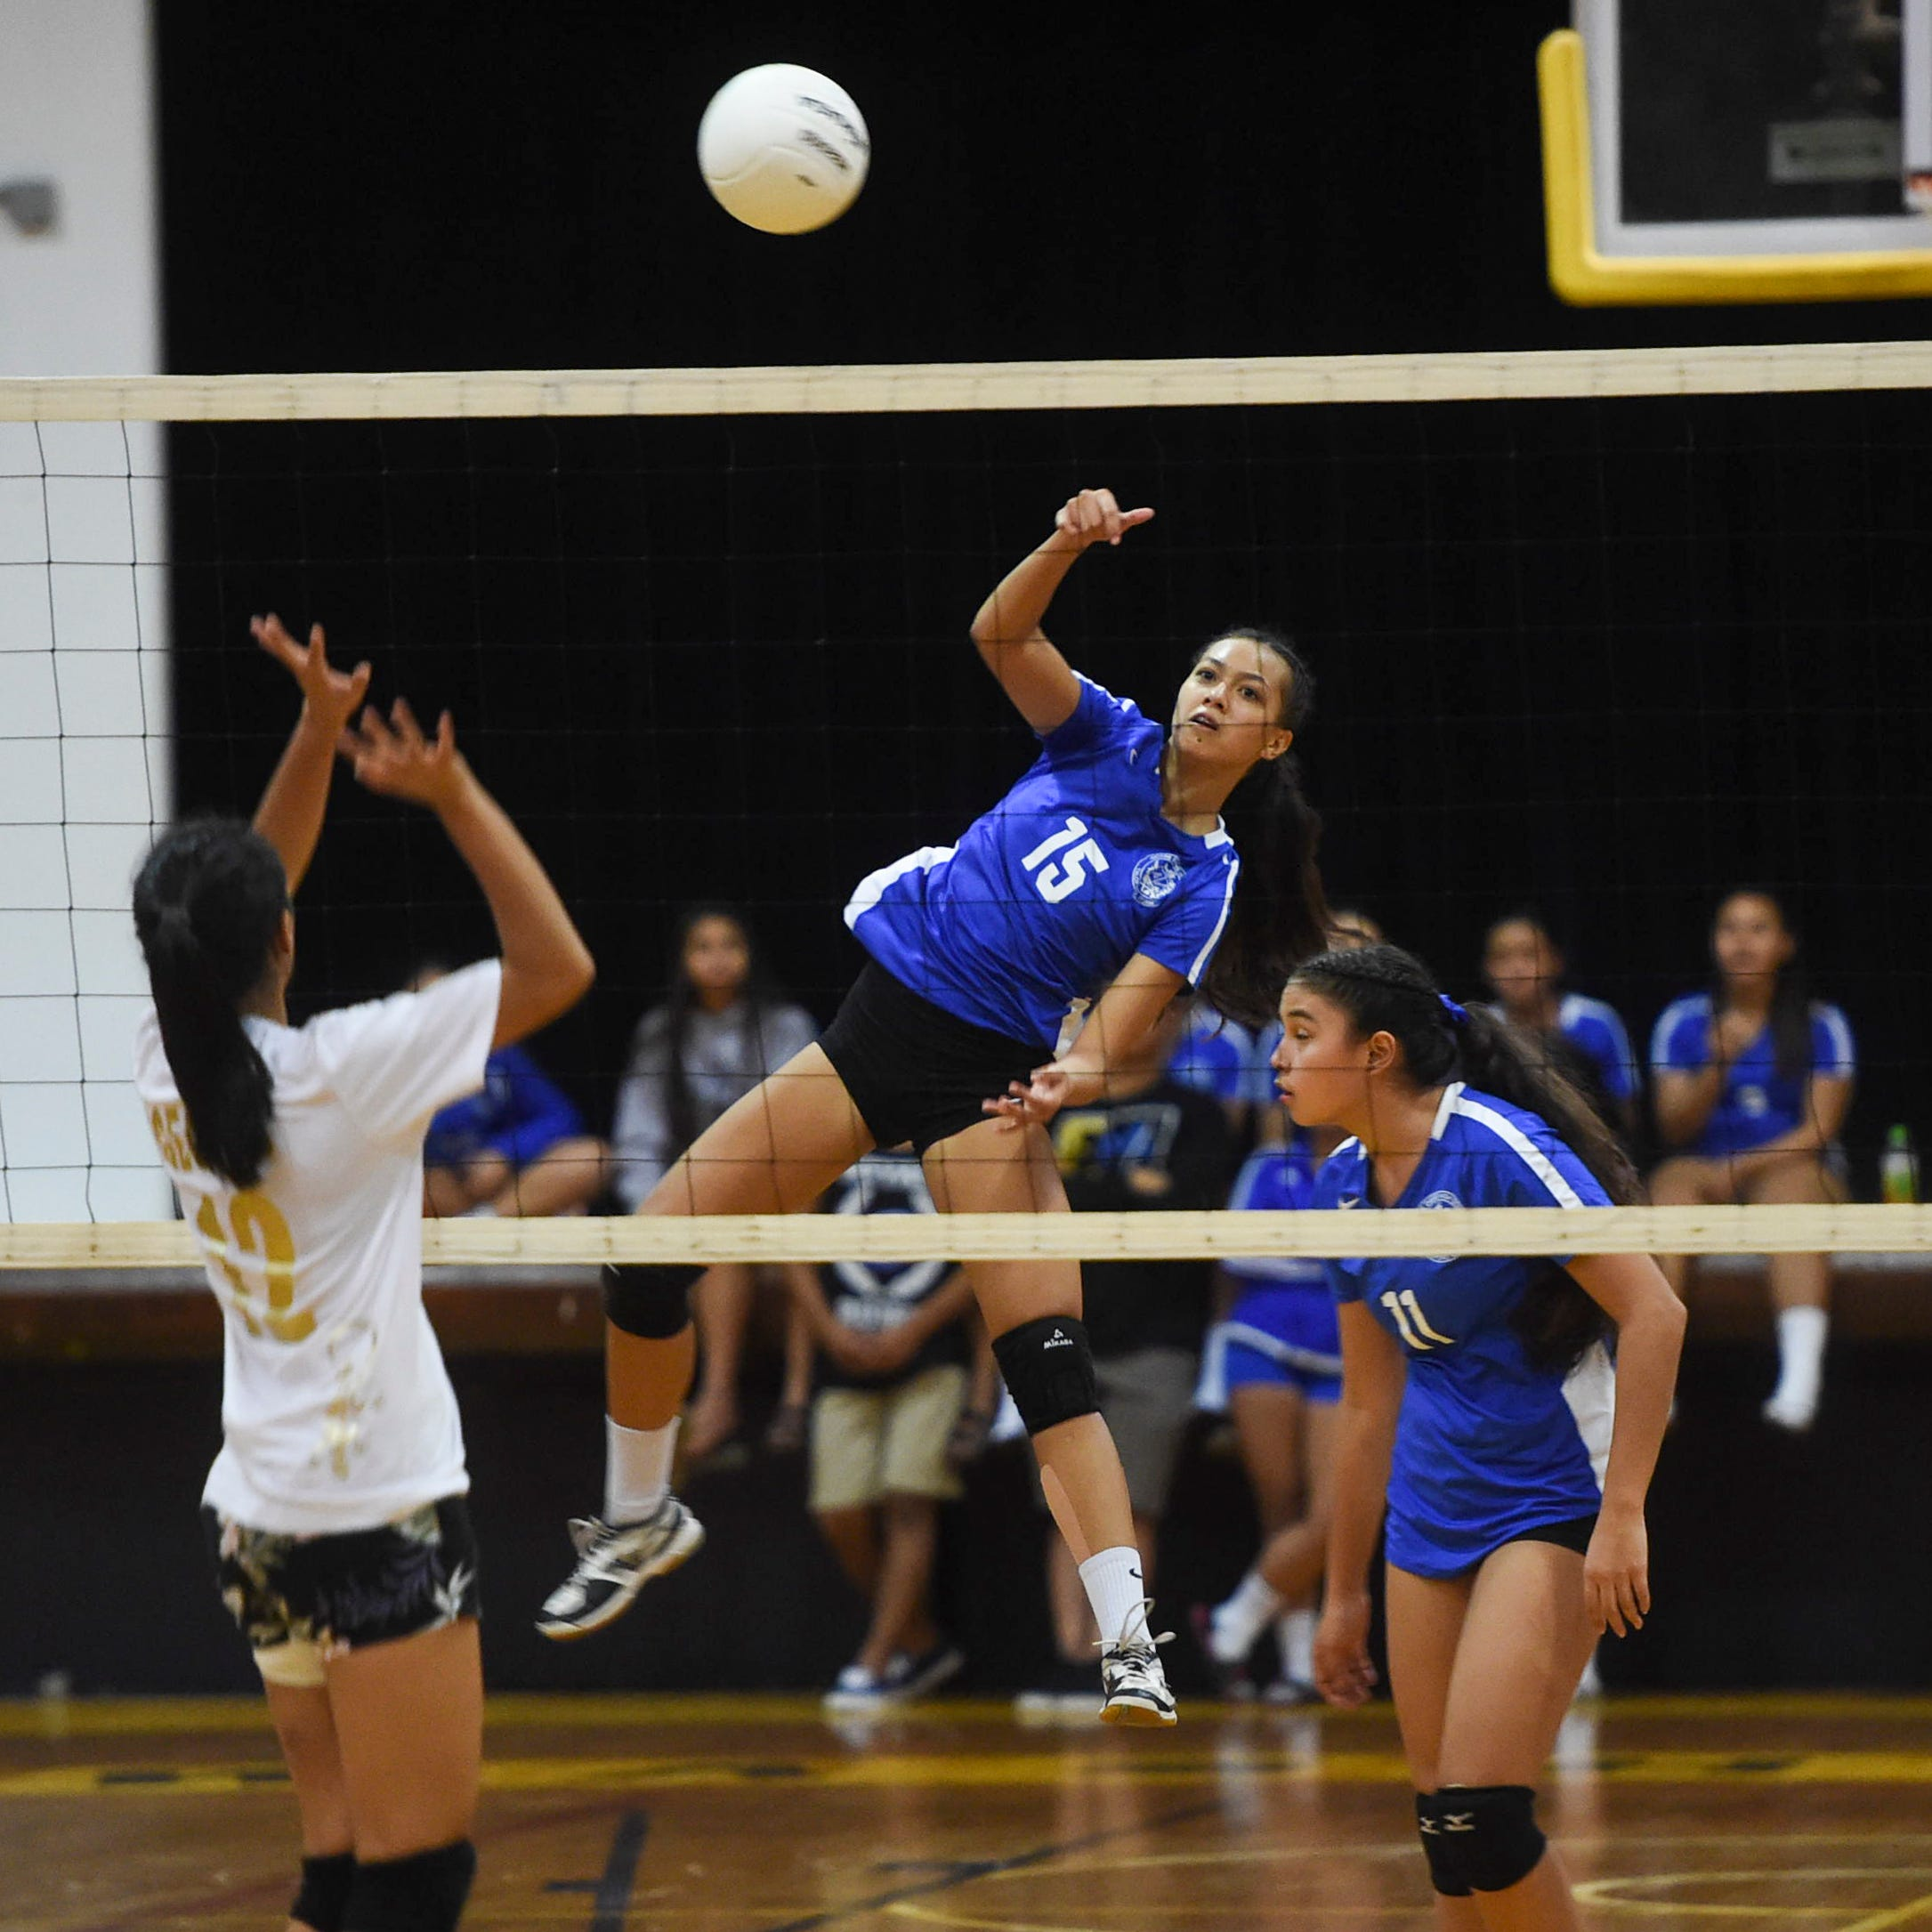 Royals outlast Geckos in seesaw three-set match